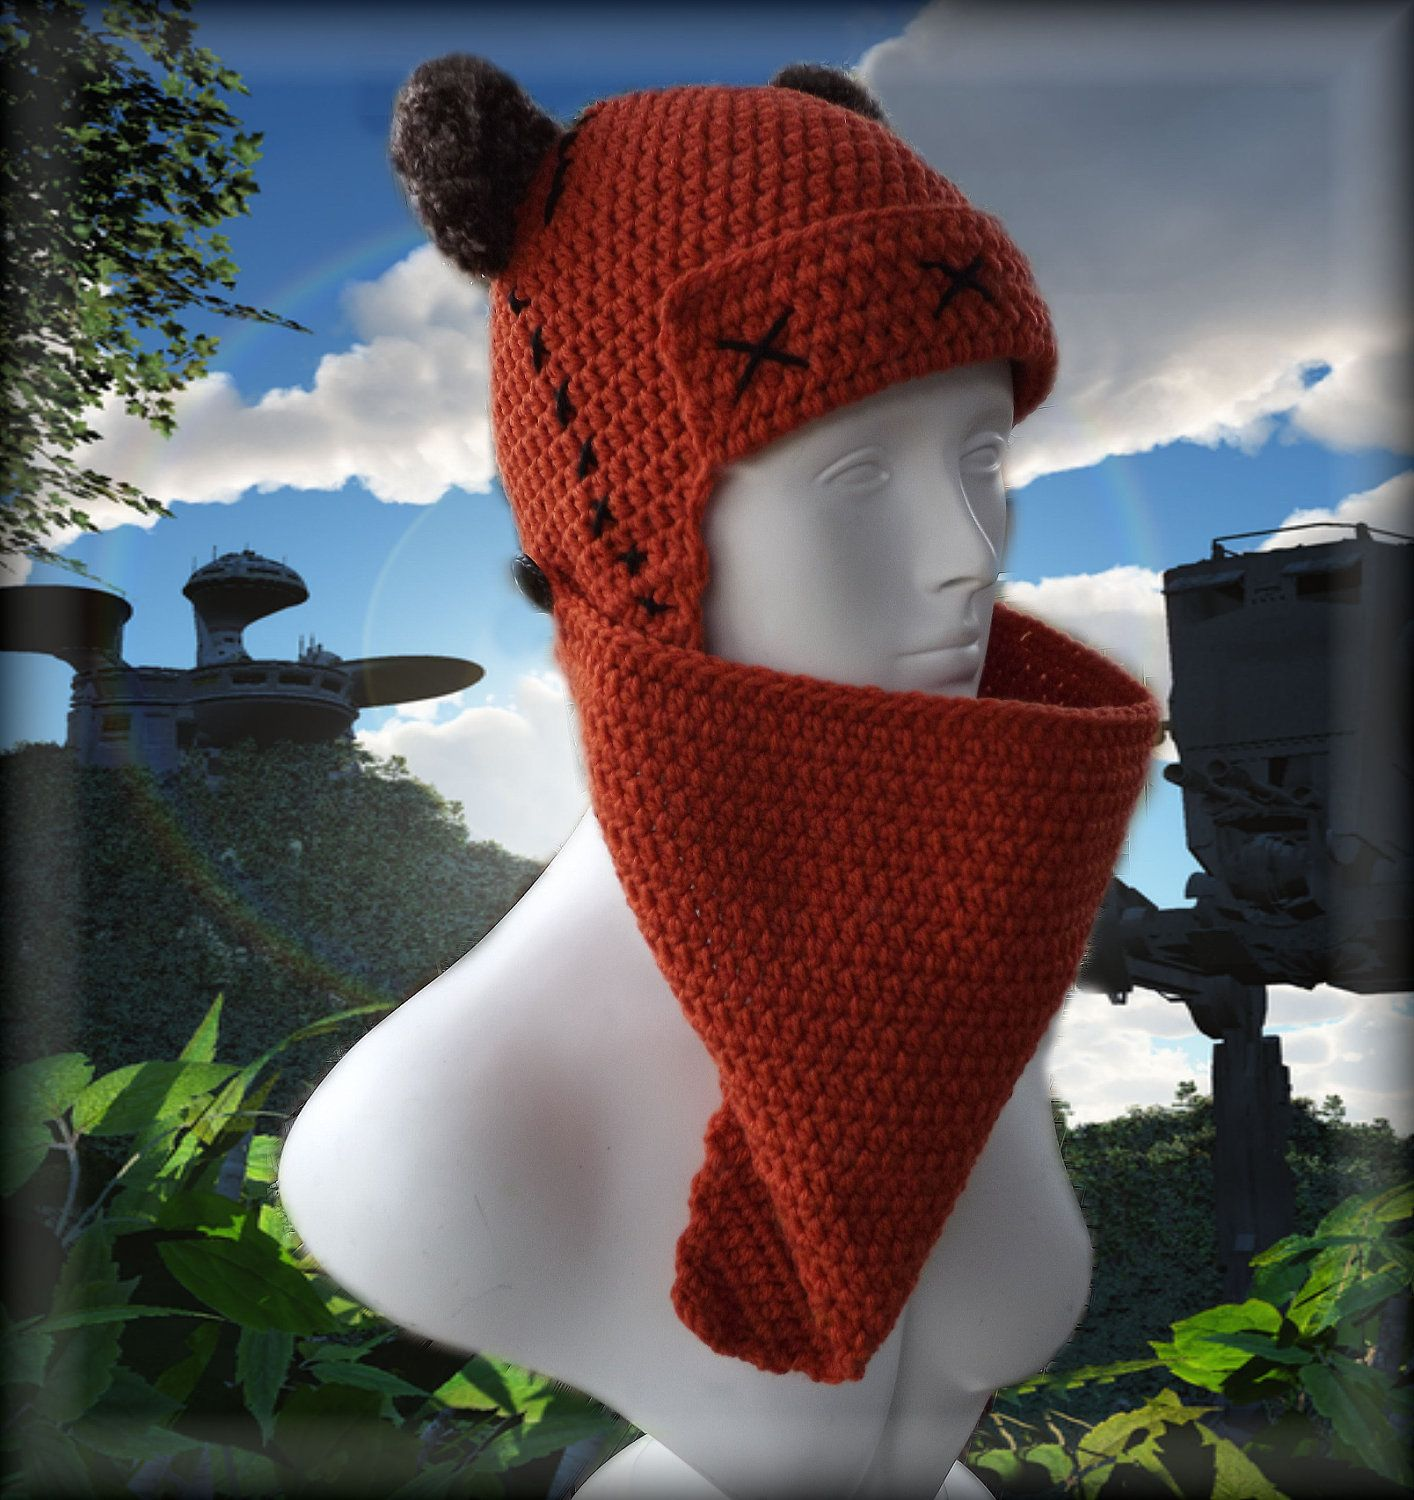 Star Wars Inspired Crochet Ewok of Endor FREE by btracydesigns ...